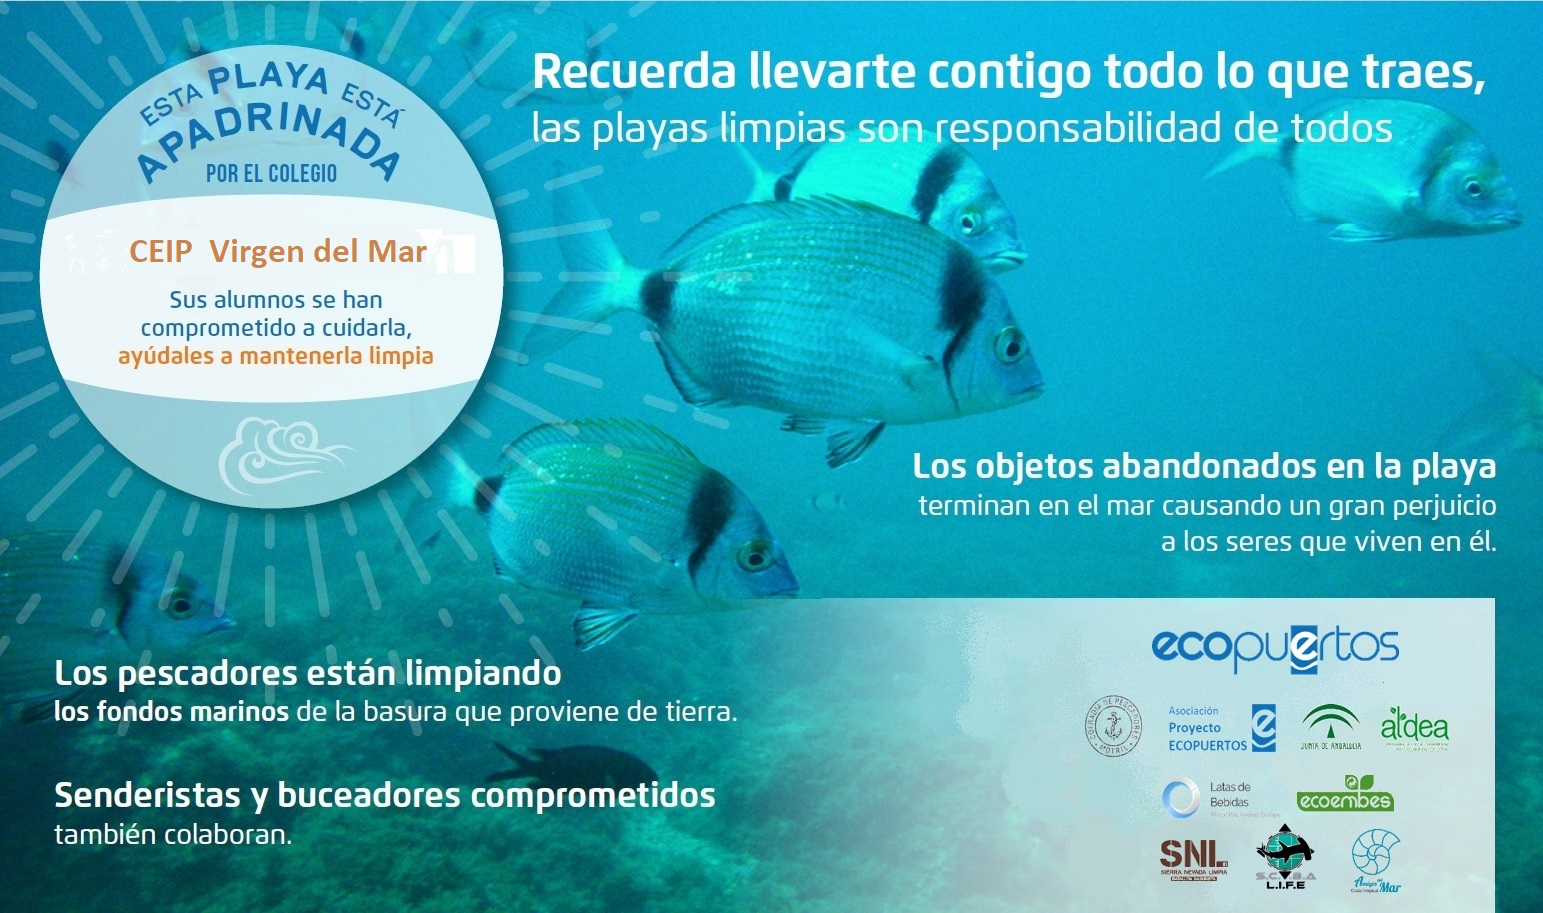 images/VIRGEN_DEL_MAR_Cartel_Playas_DEFINITIVO_2200_x_1300_.jpg